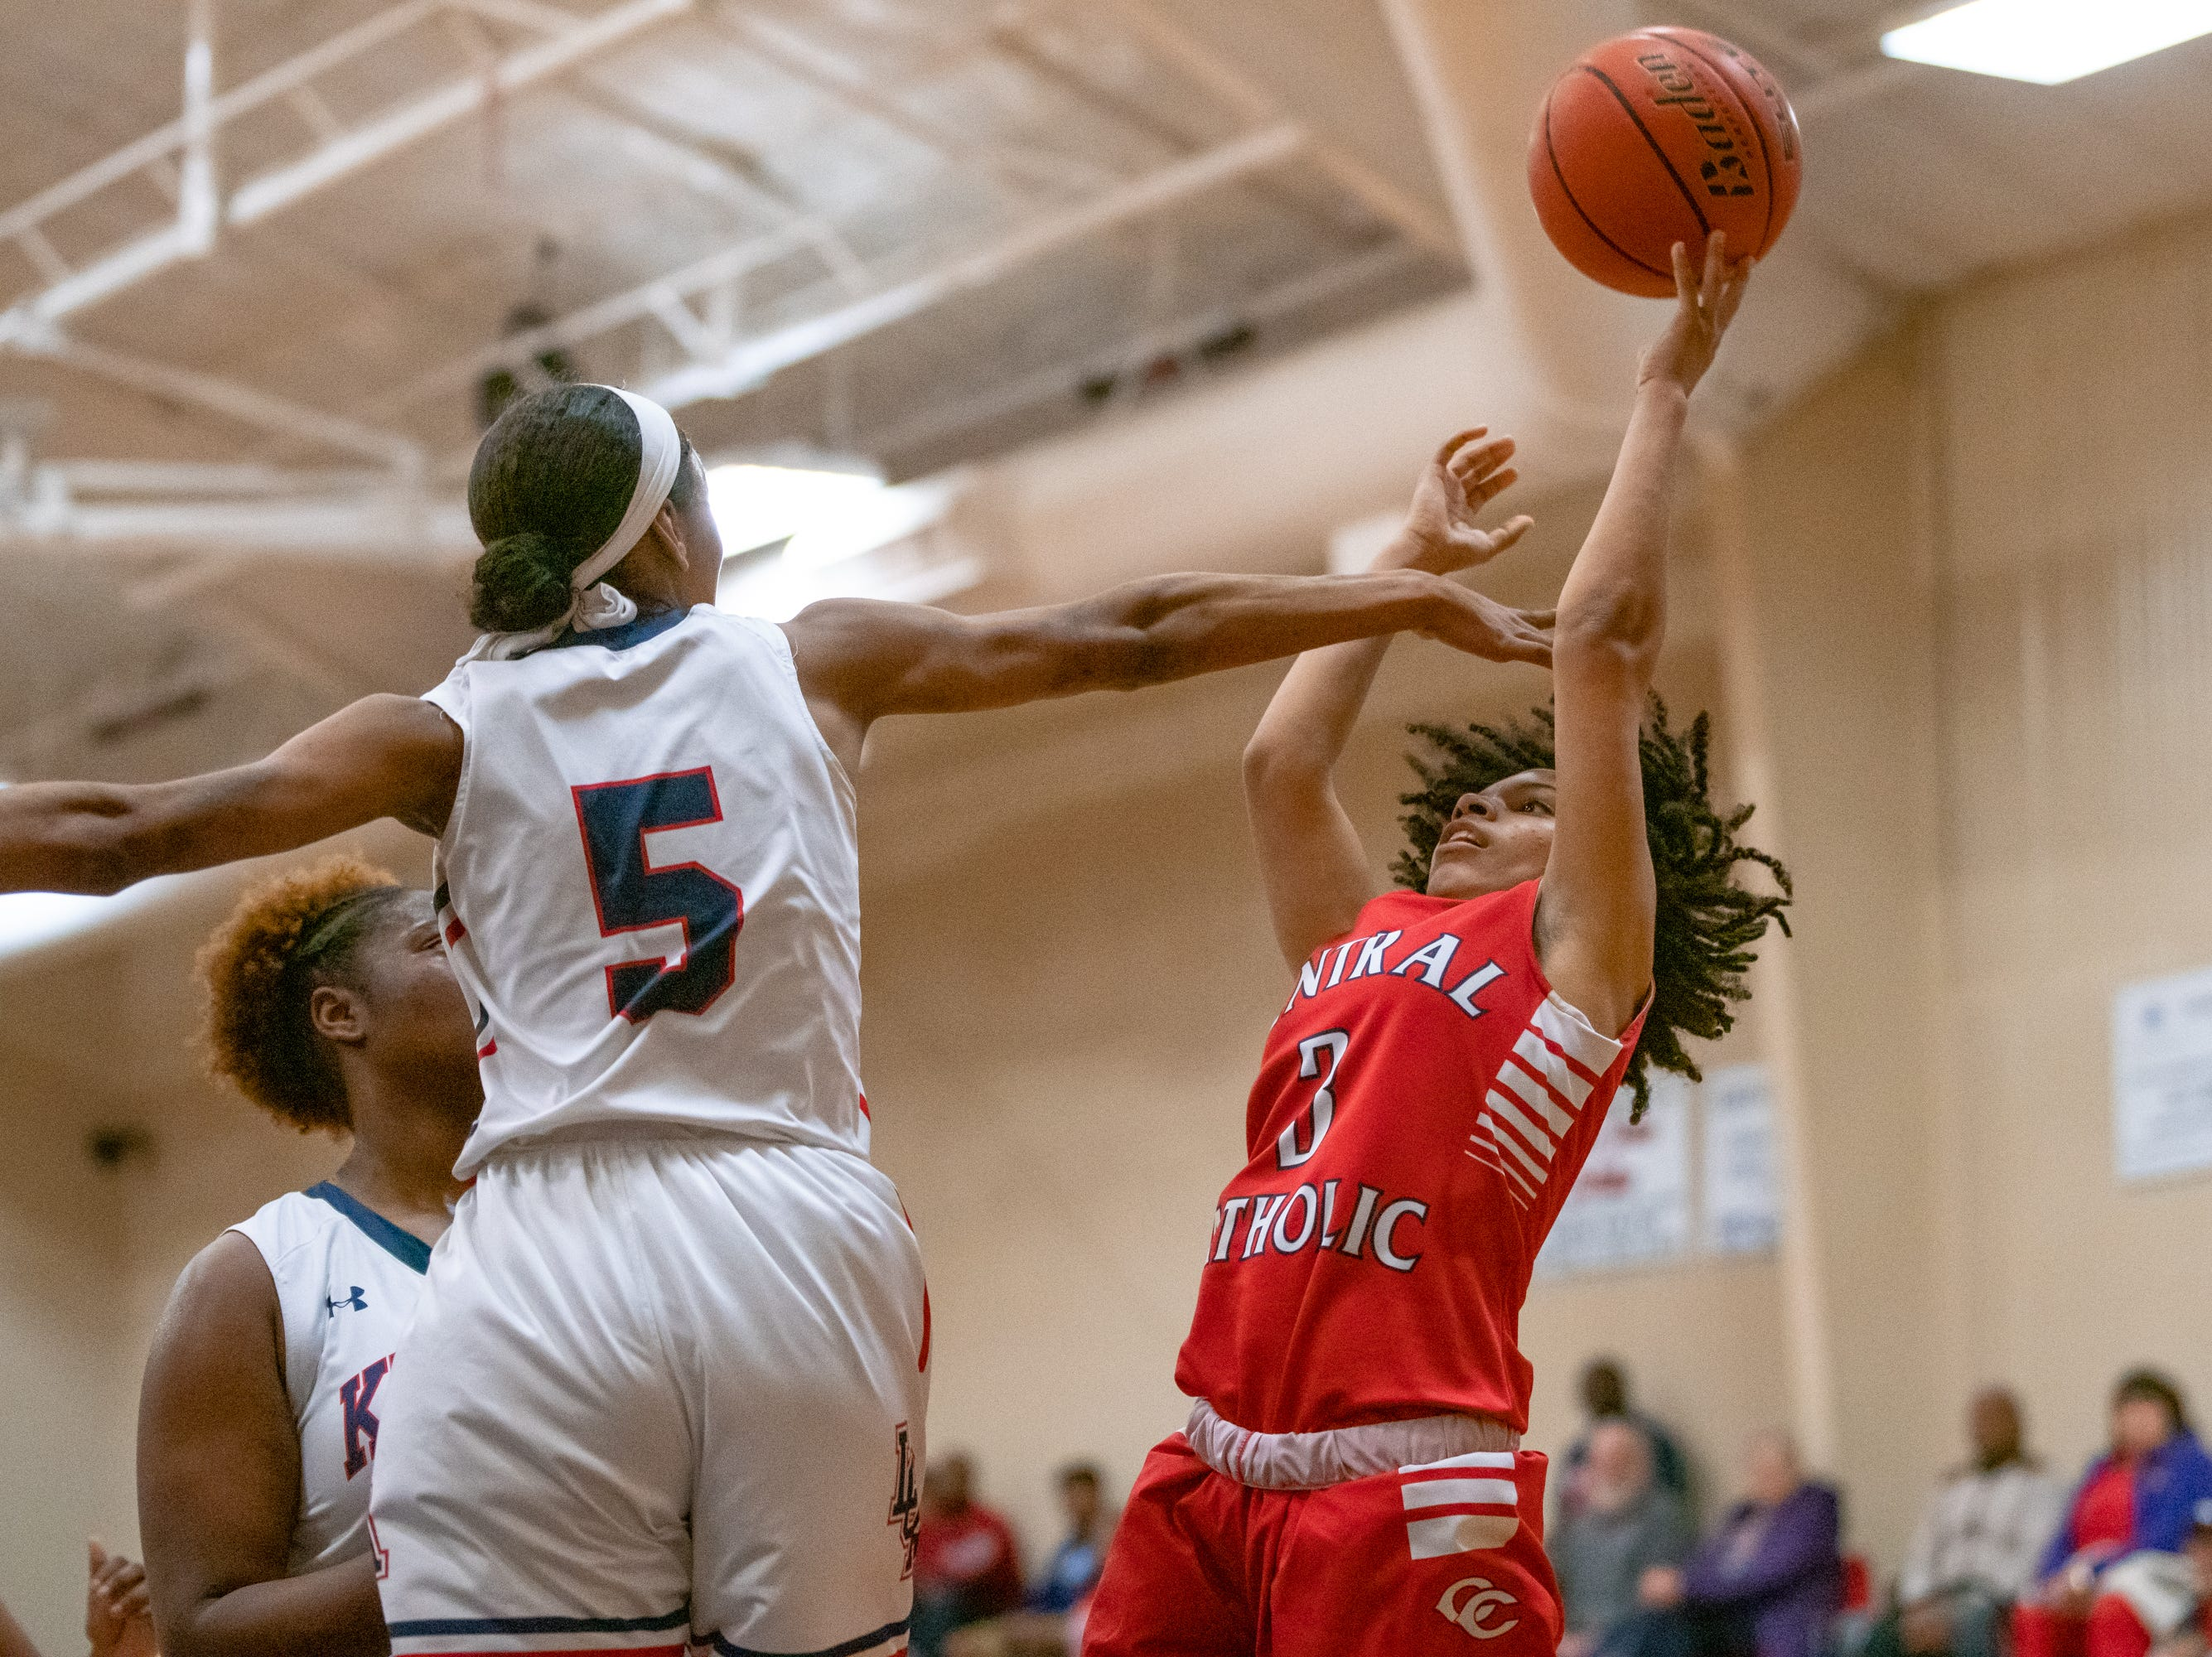 Central Catholic's Jay Bertrand takes a shot over a Lafayette Christian defender as the LCA Knights take on the Central Catholic Eagles at home on Thursday, Feb. 21, 2019.